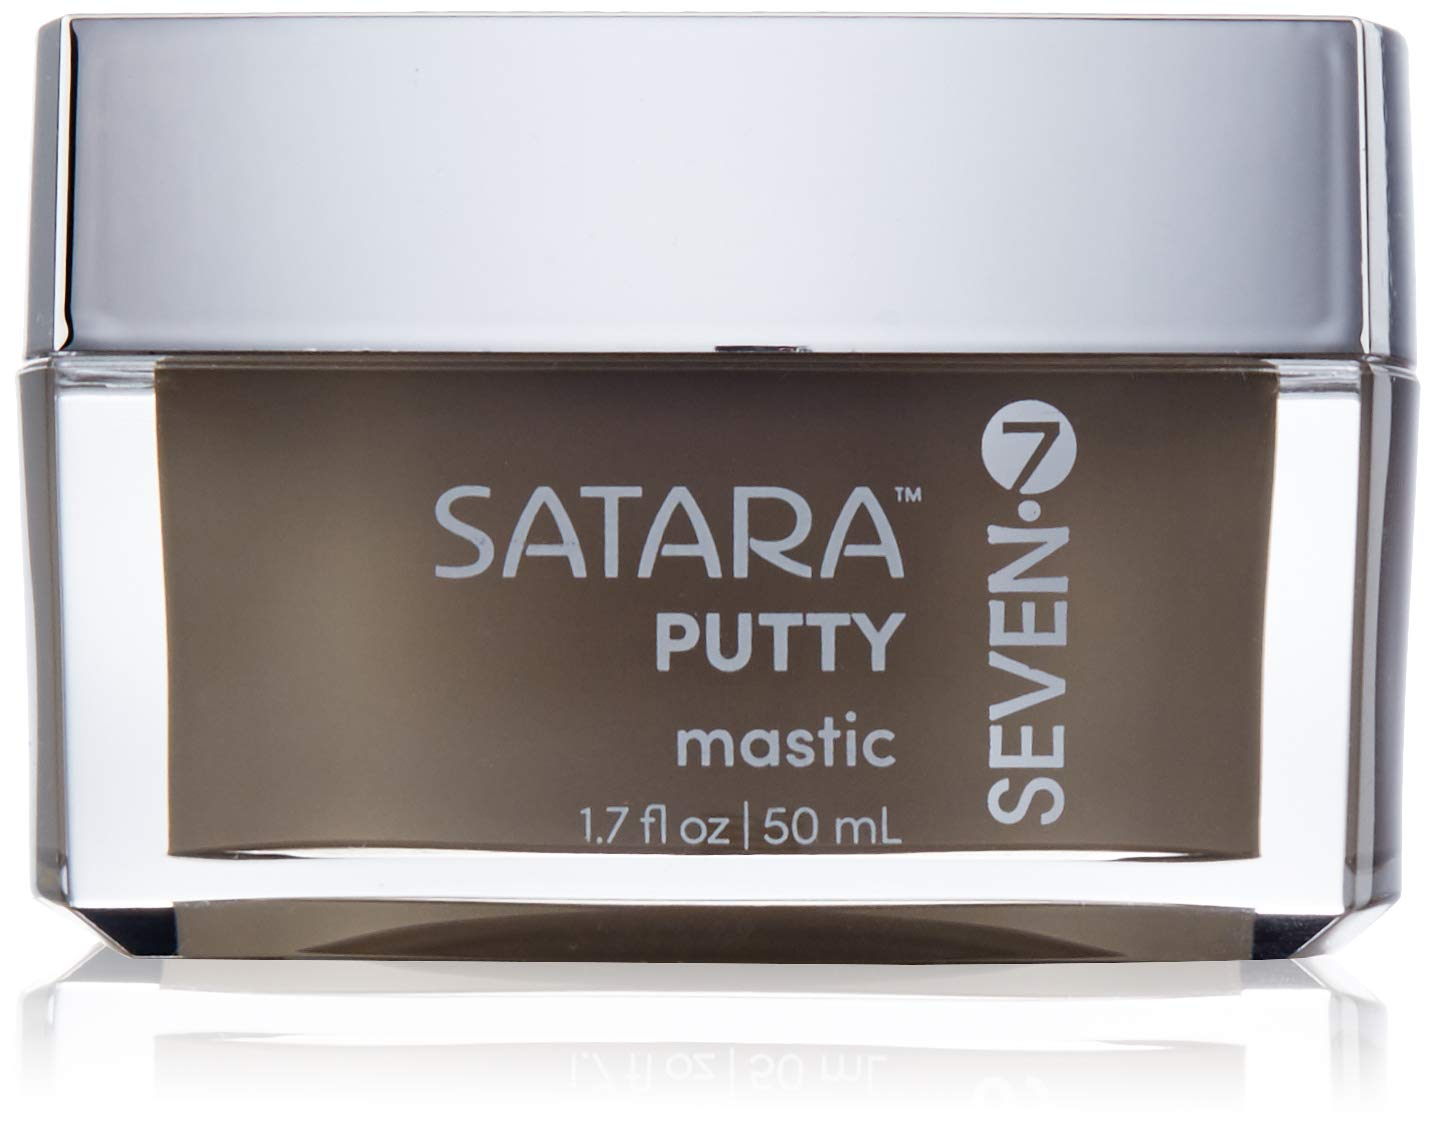 Satara Putty Mastic from SEVEN Haircare Anti Frizz Defining Cream for Curly Hair or Straight Hair, Gluten Free, Alcohol Free, 1.7 fl. oz. by Seven